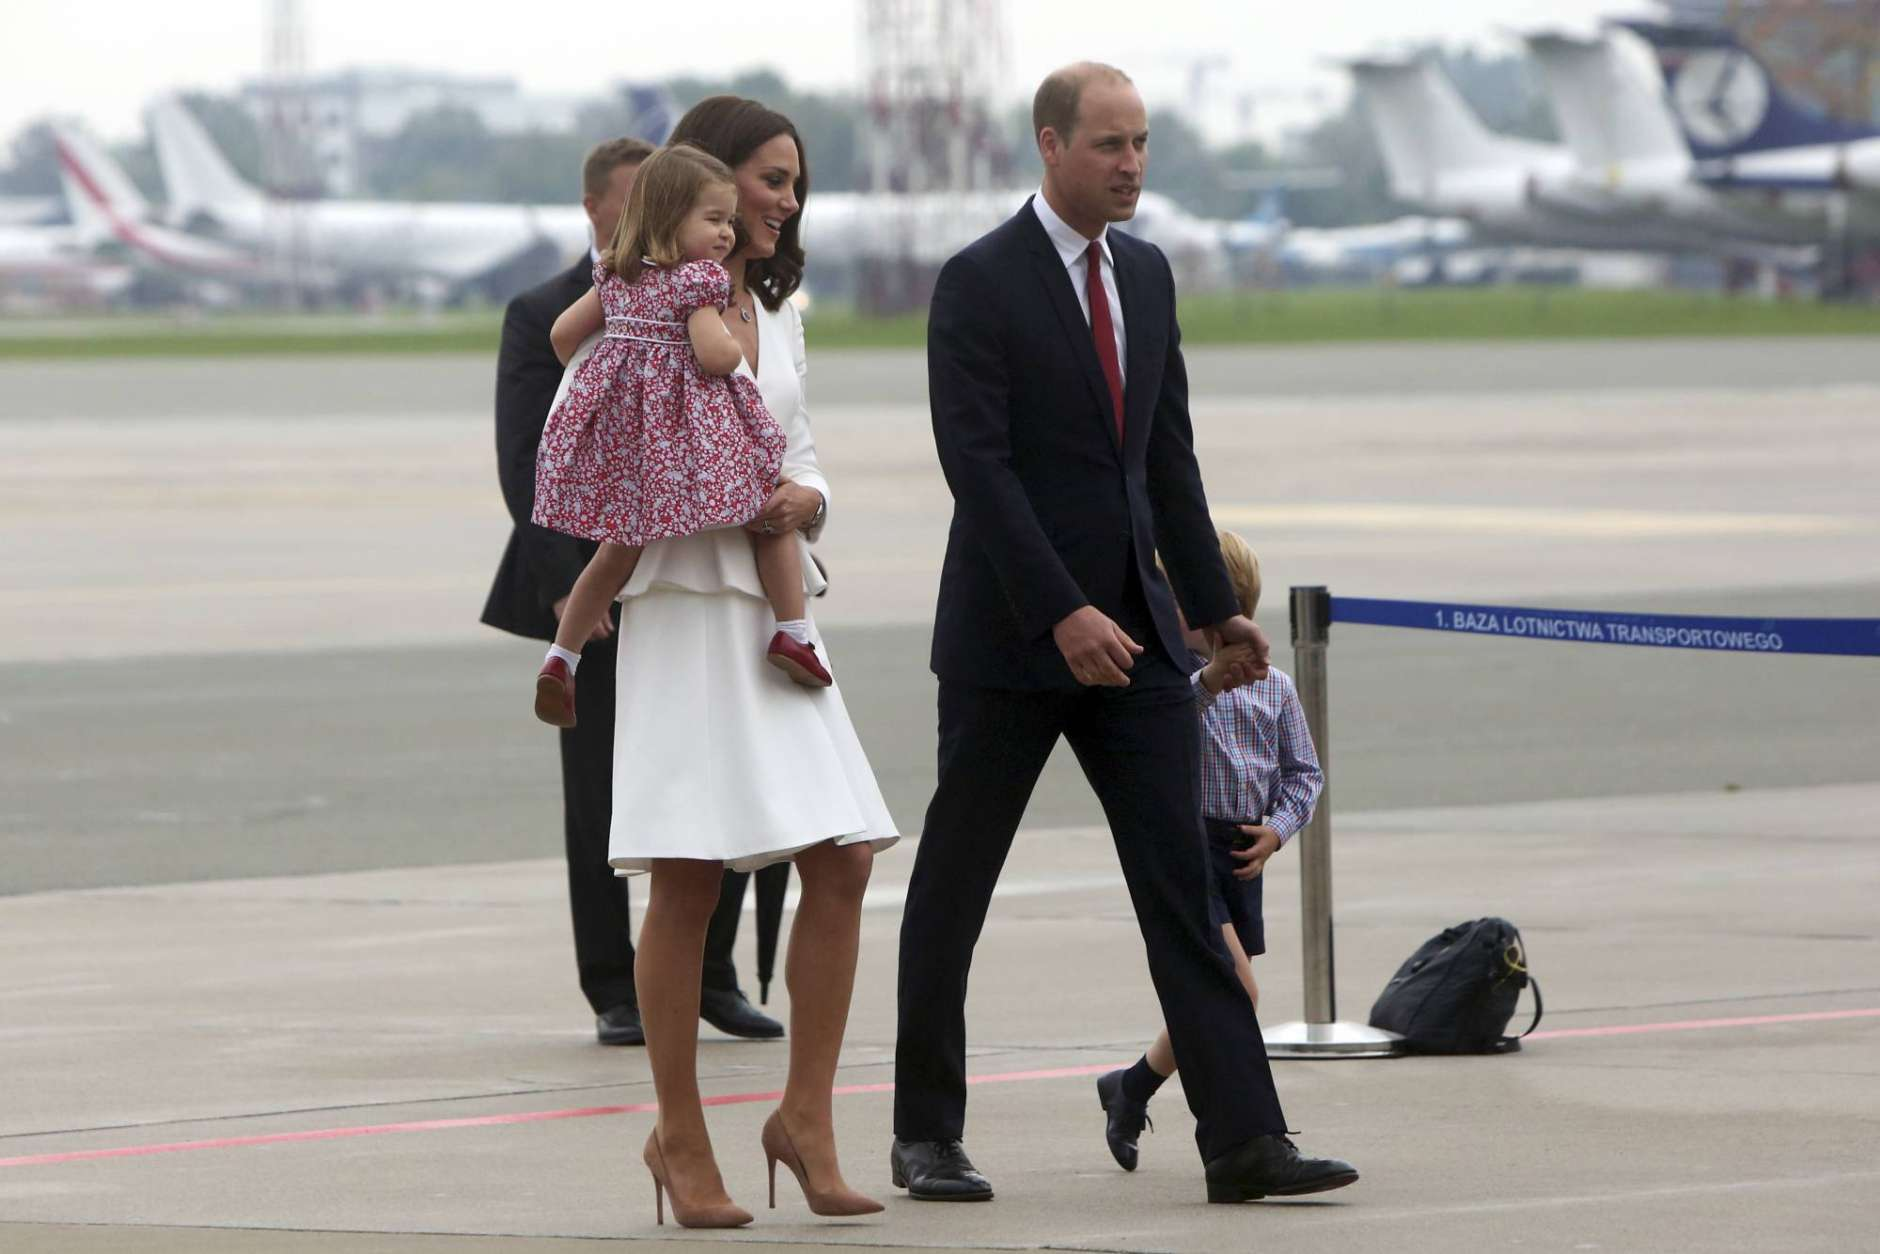 Britain's Kate, the Duchess of Cambridge holding Princess Charlotte walks with Prince William and Prince George towards the airport upon arrival, in Warsaw , Poland, Monday, July 17, 2017. The Duke and Duchess of Cambridge and their children have arrived in Poland, the first leg of a goodwill trip to two European Union nations that seeks to underscore Britain's friendly ties despite its negotiations to leave the bloc. (AP Photo/Czarek Sokolowski)